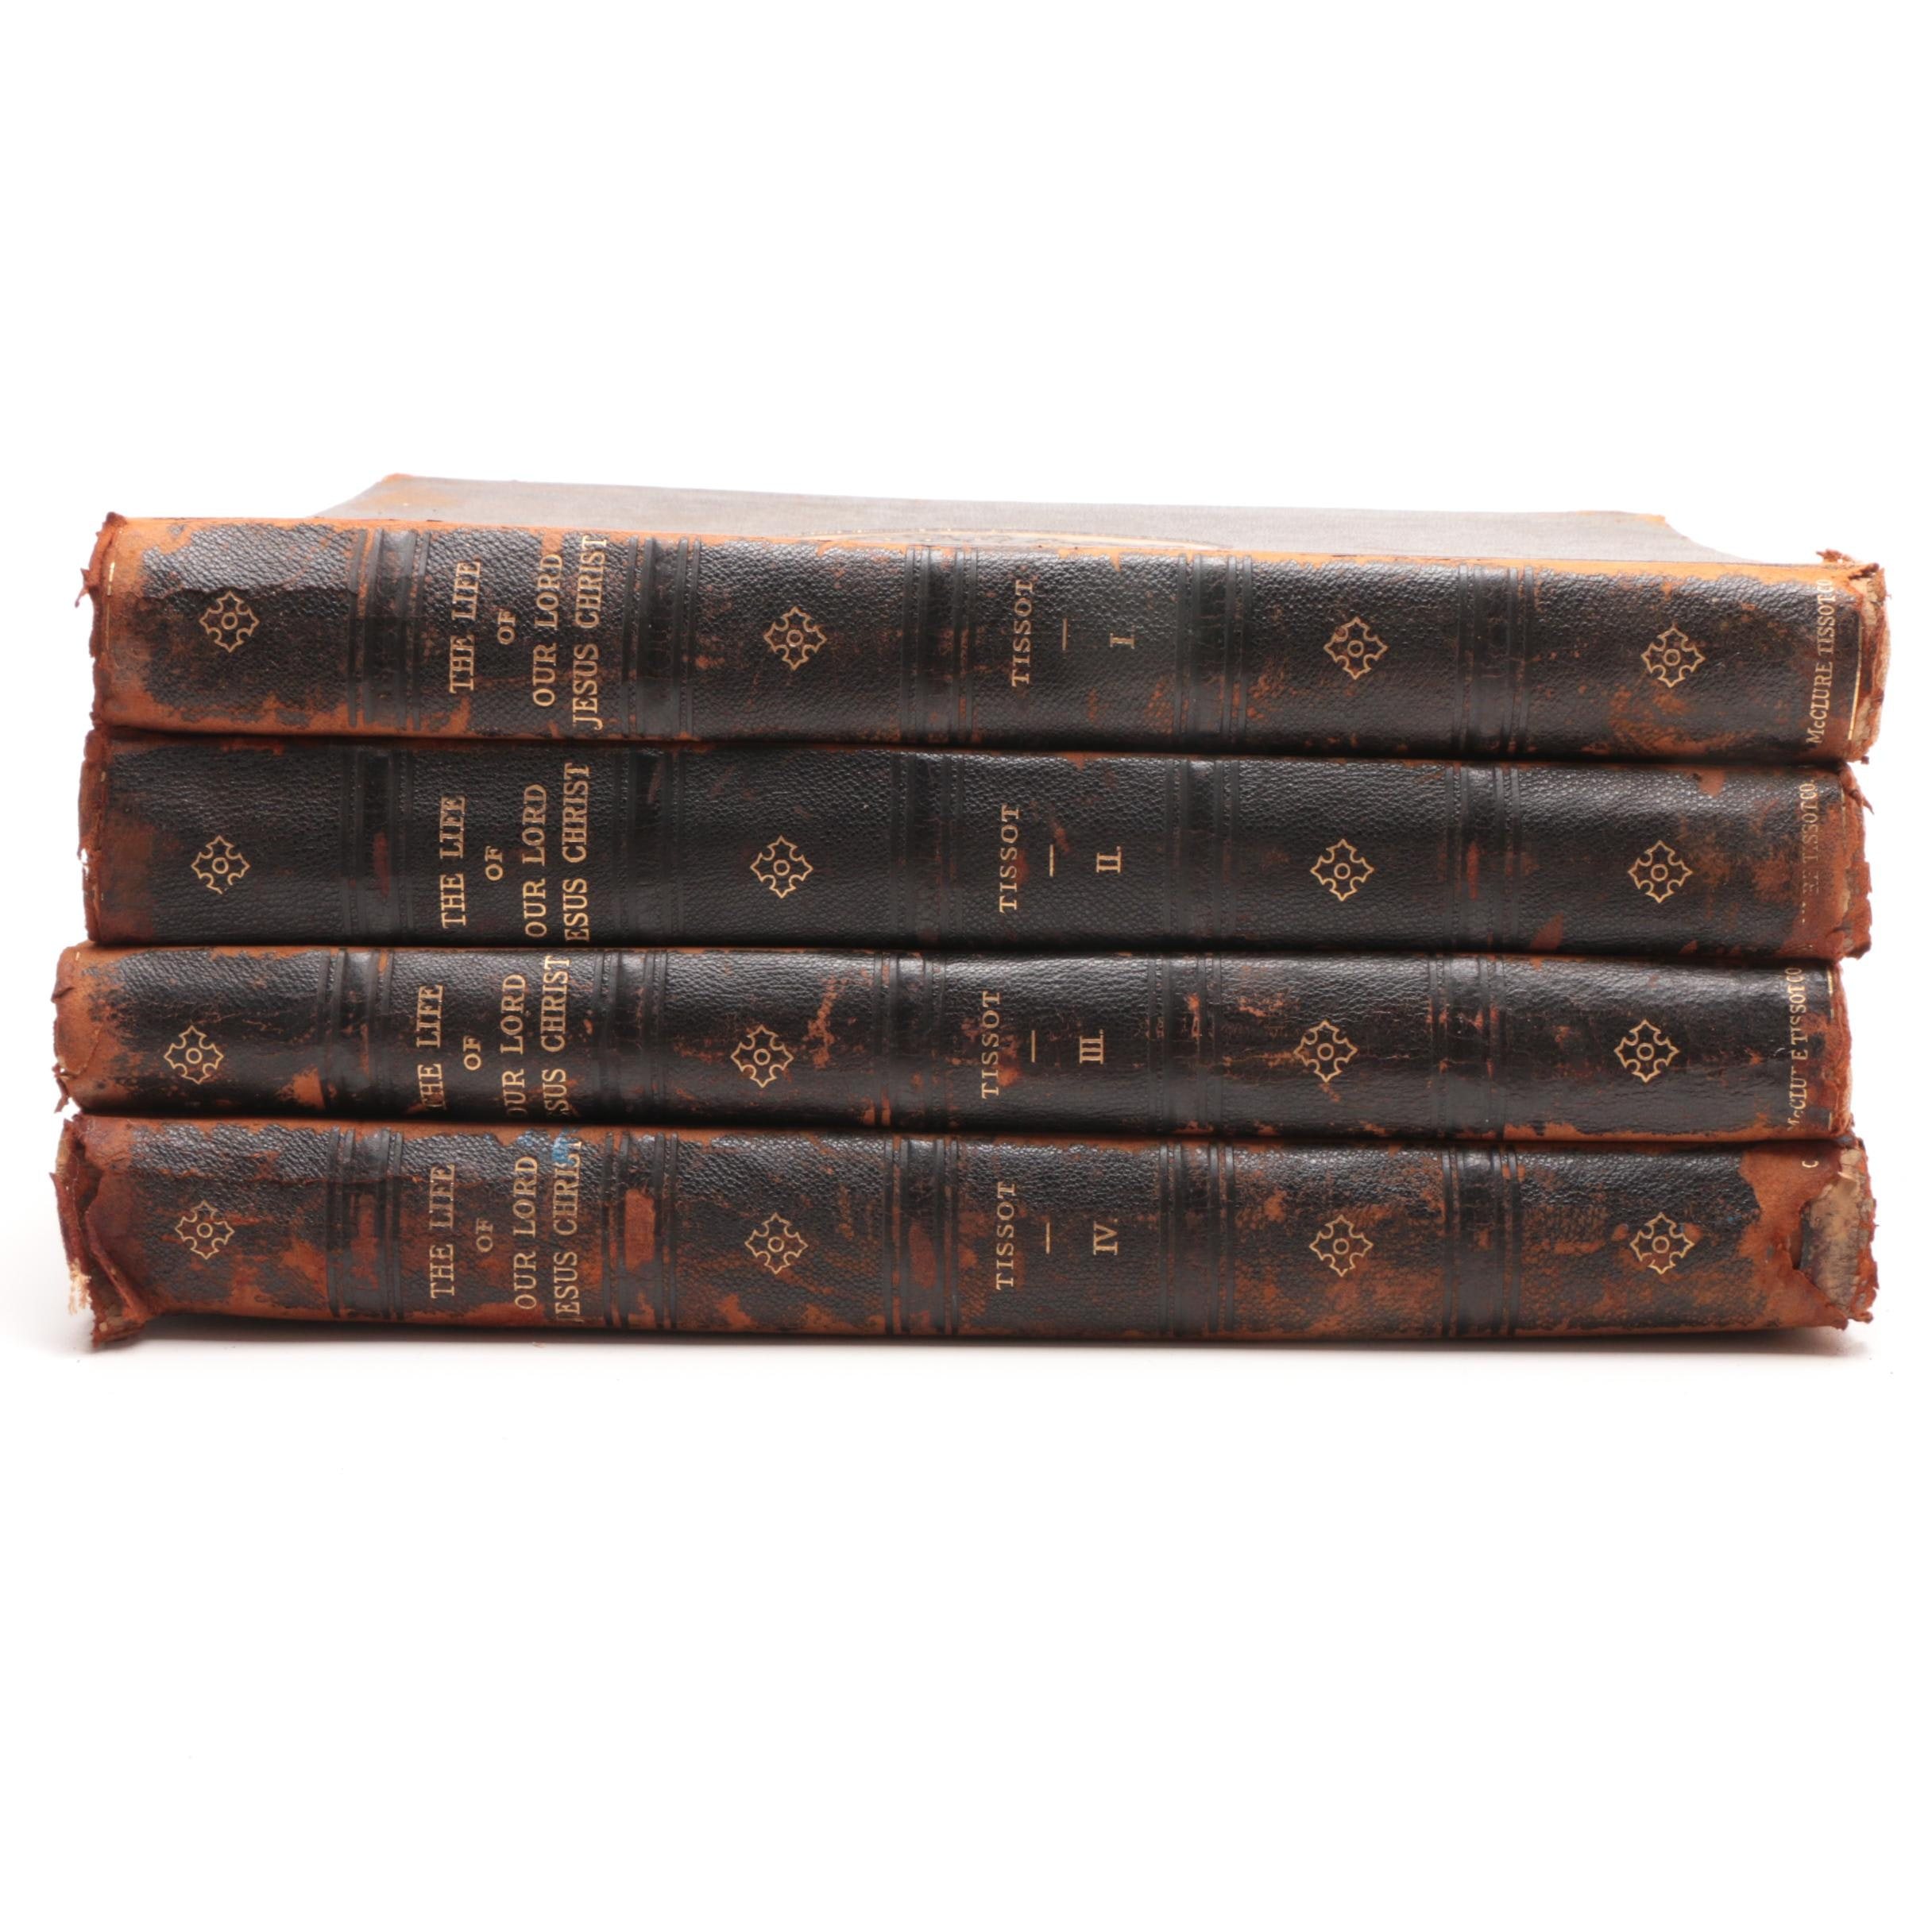 Antique Four Volume Collection on the Life of Jesus Christ